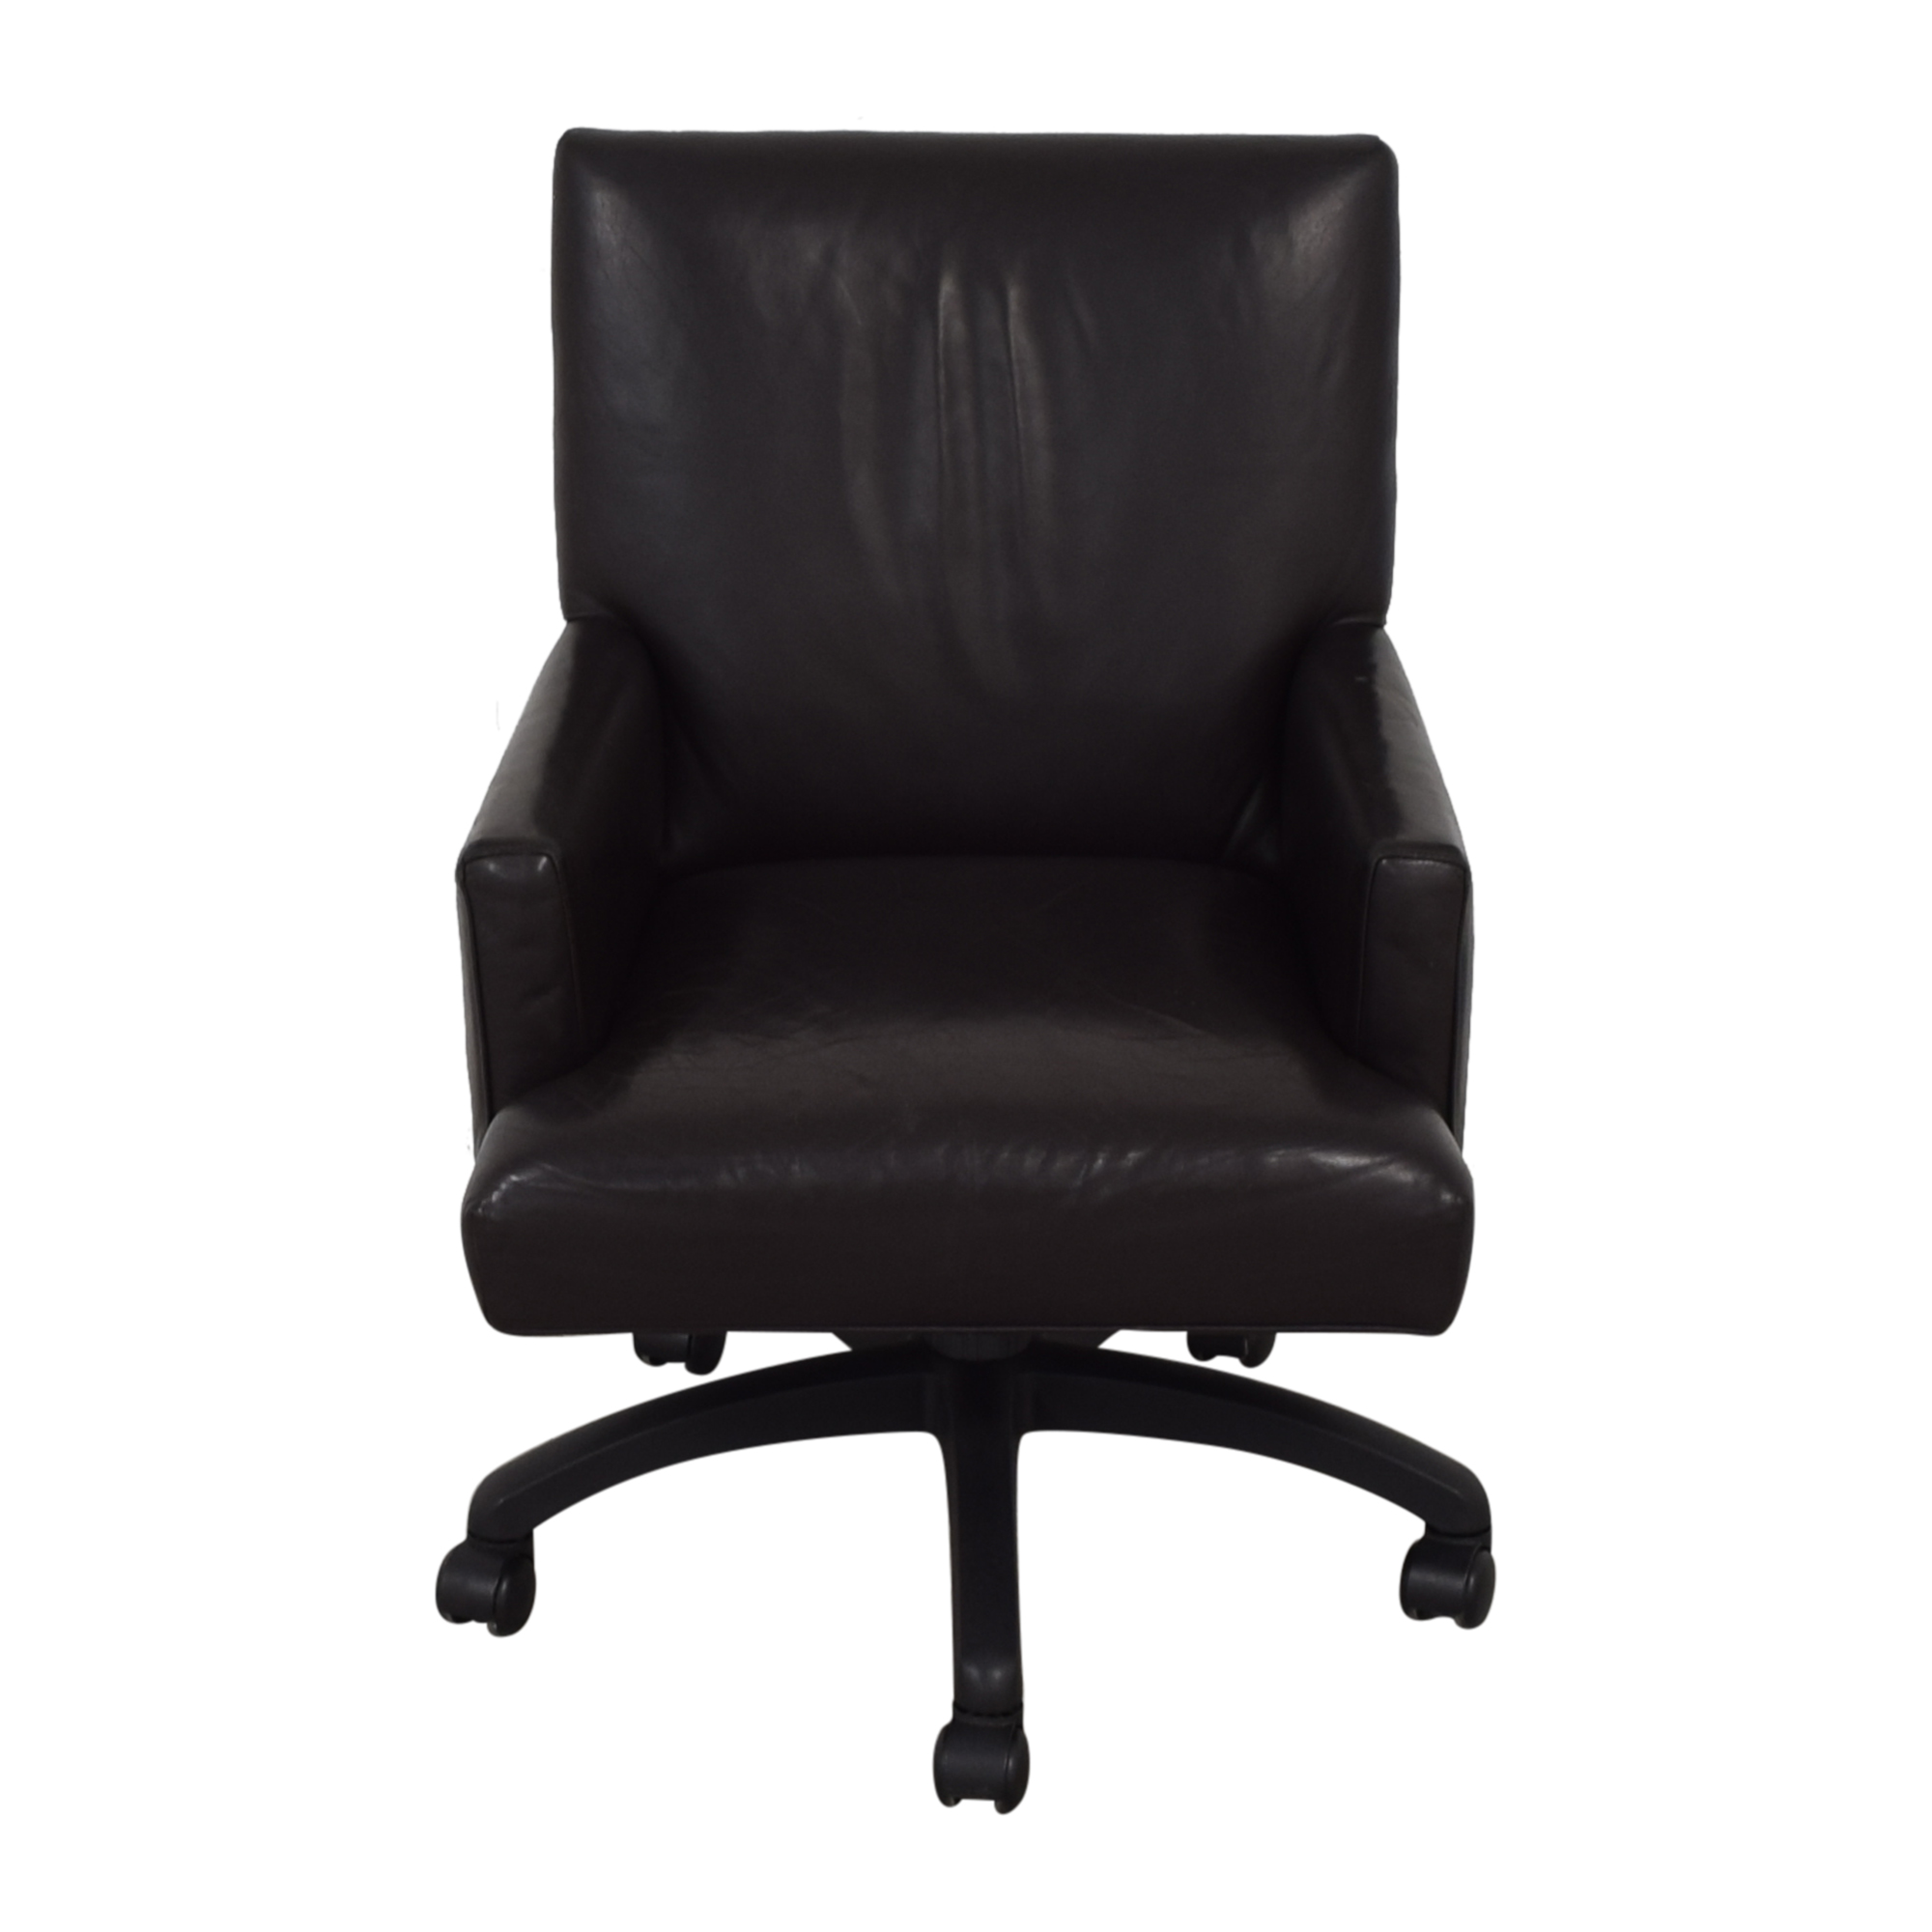 Crate & Barrel Crate & Barrel Office Chair price